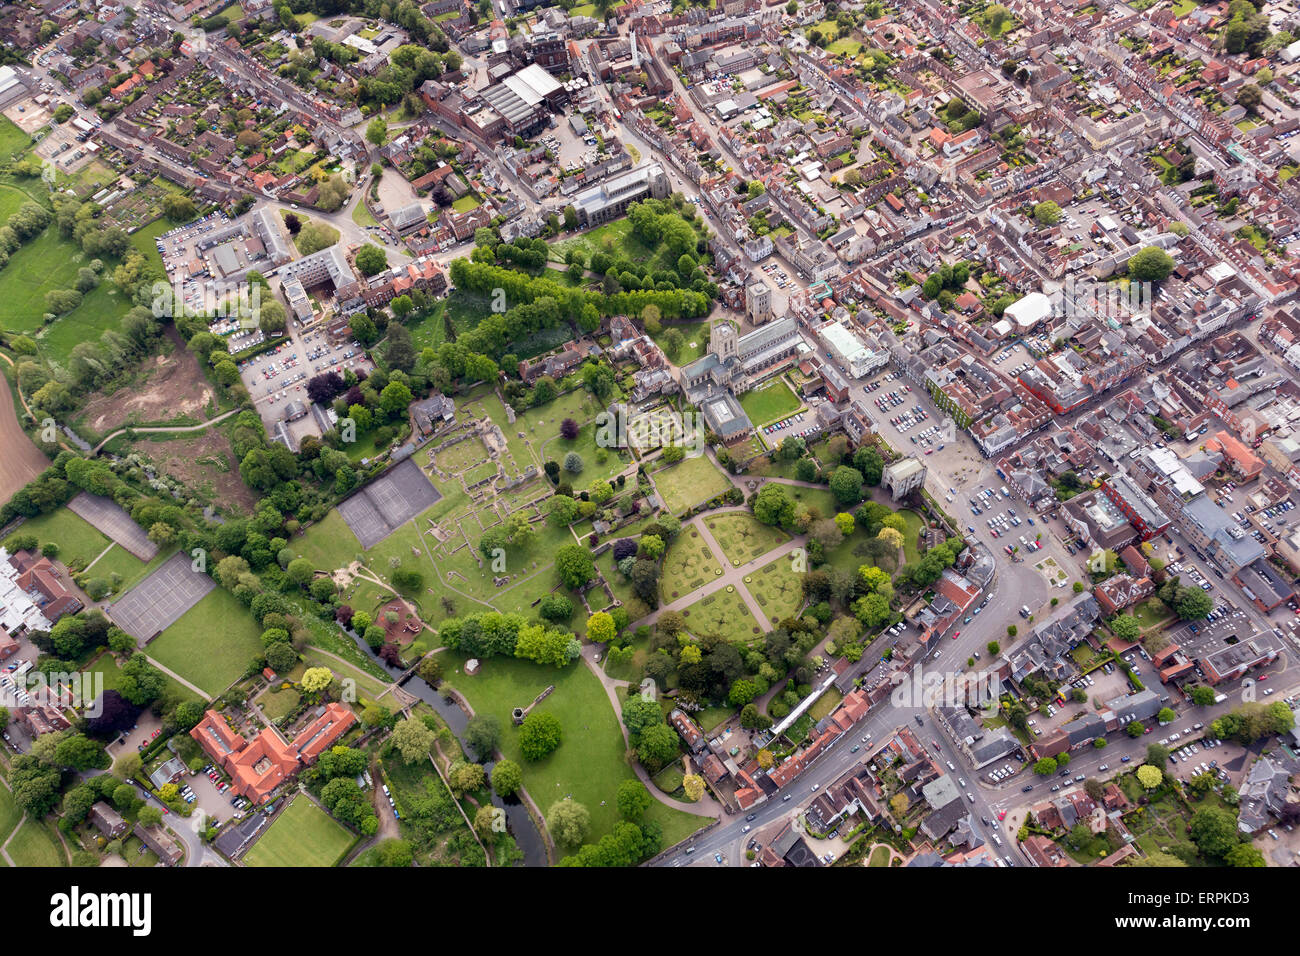 Aerial photo of Bury St Edmunds showing the Abbey Gardens - Stock Image